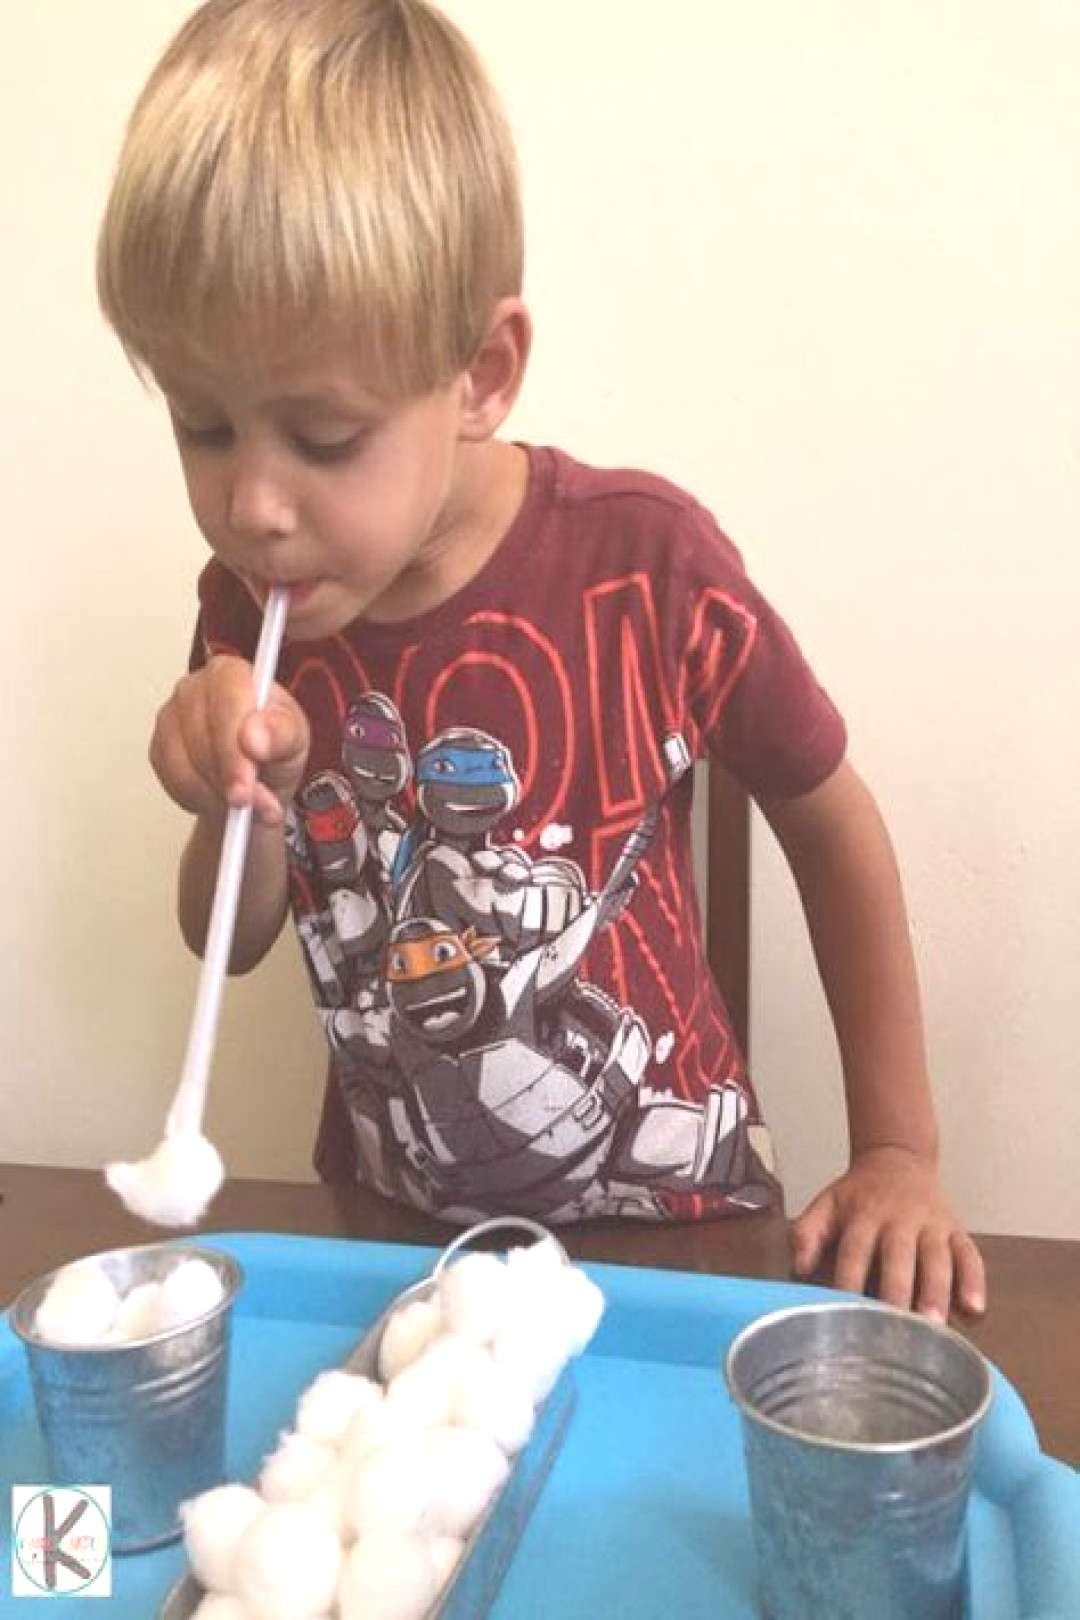 oral motor exercises pre-school and early childhood motor skills training - education - oral motor